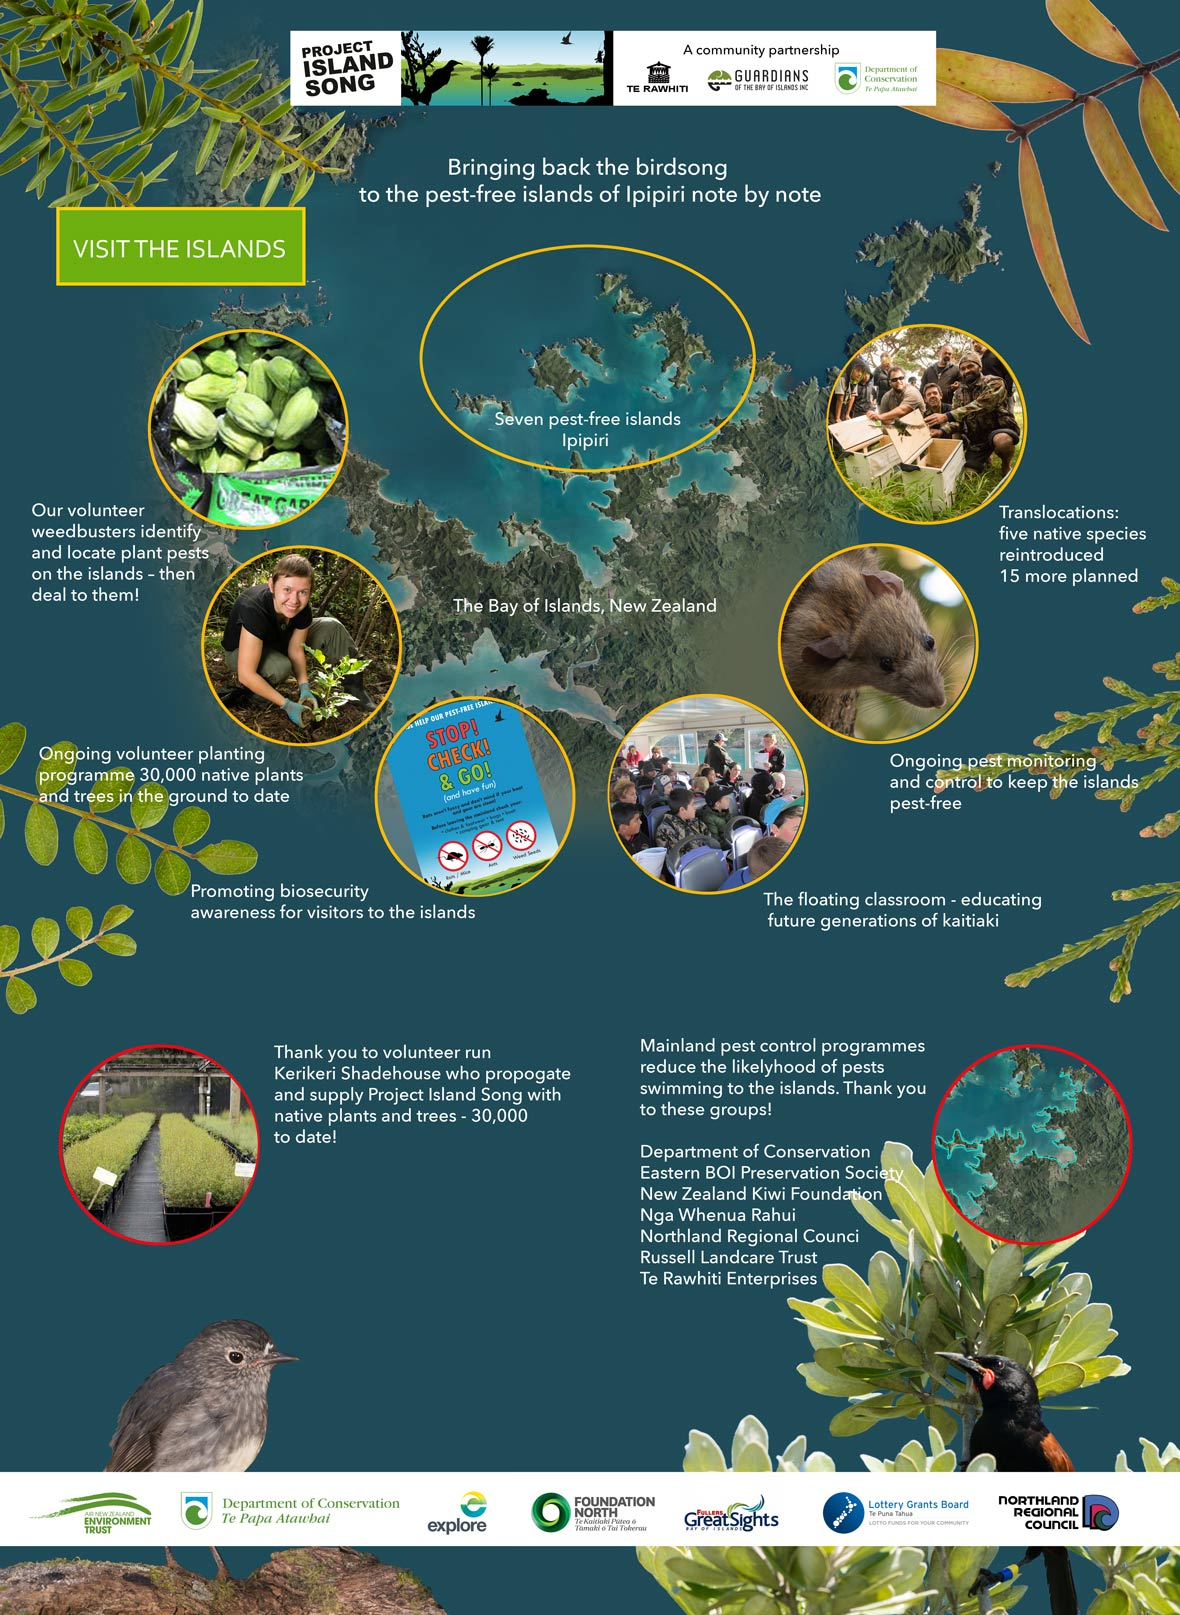 This image demonstrates the wide range of activites that make up Project Island Song. Weedbusting, planting programmes, biosecurity, floating classrooms, pest monitoring and control and species trans-locations. Working with Project Island Song are community groups The shadehouse who propogate and prived us with native plants - 30,000 to date! Also mainland pest control groups that reduce the likelyhood of pests swimming from the mainland to the islands